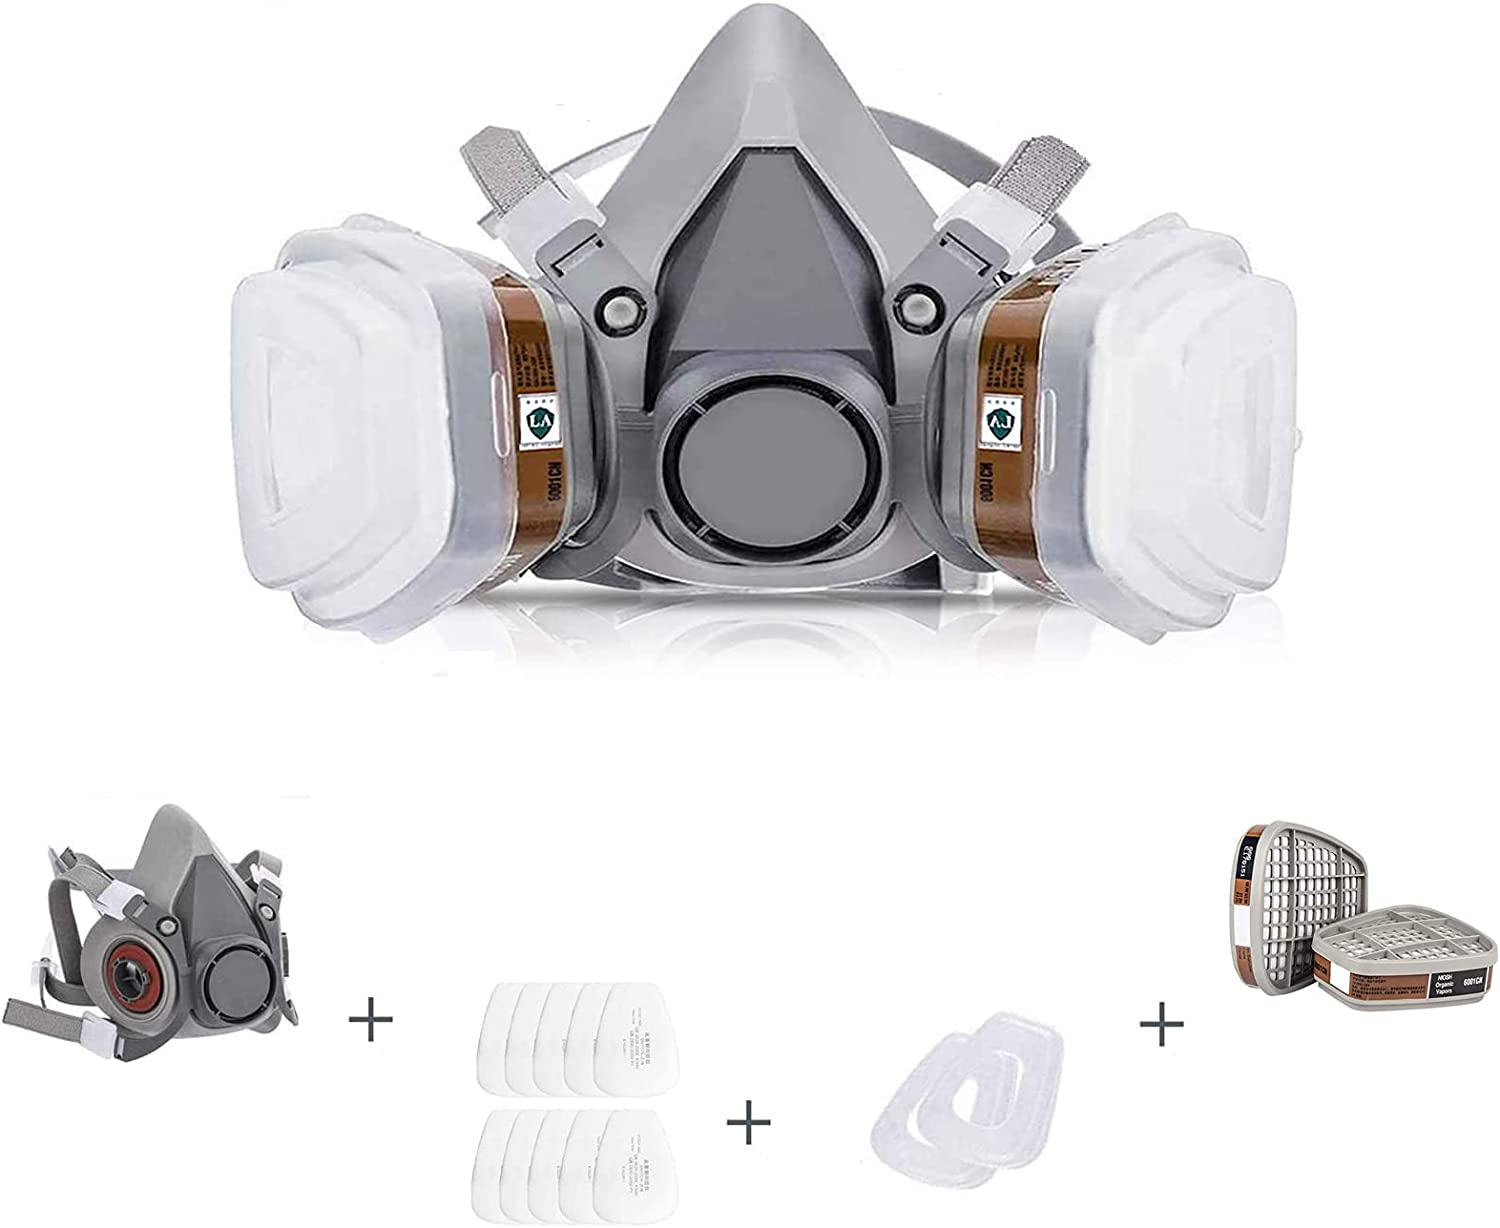 Reusable Bargain Face Cover Set for Vapors Organic Dust Max 47% OFF Against Painting